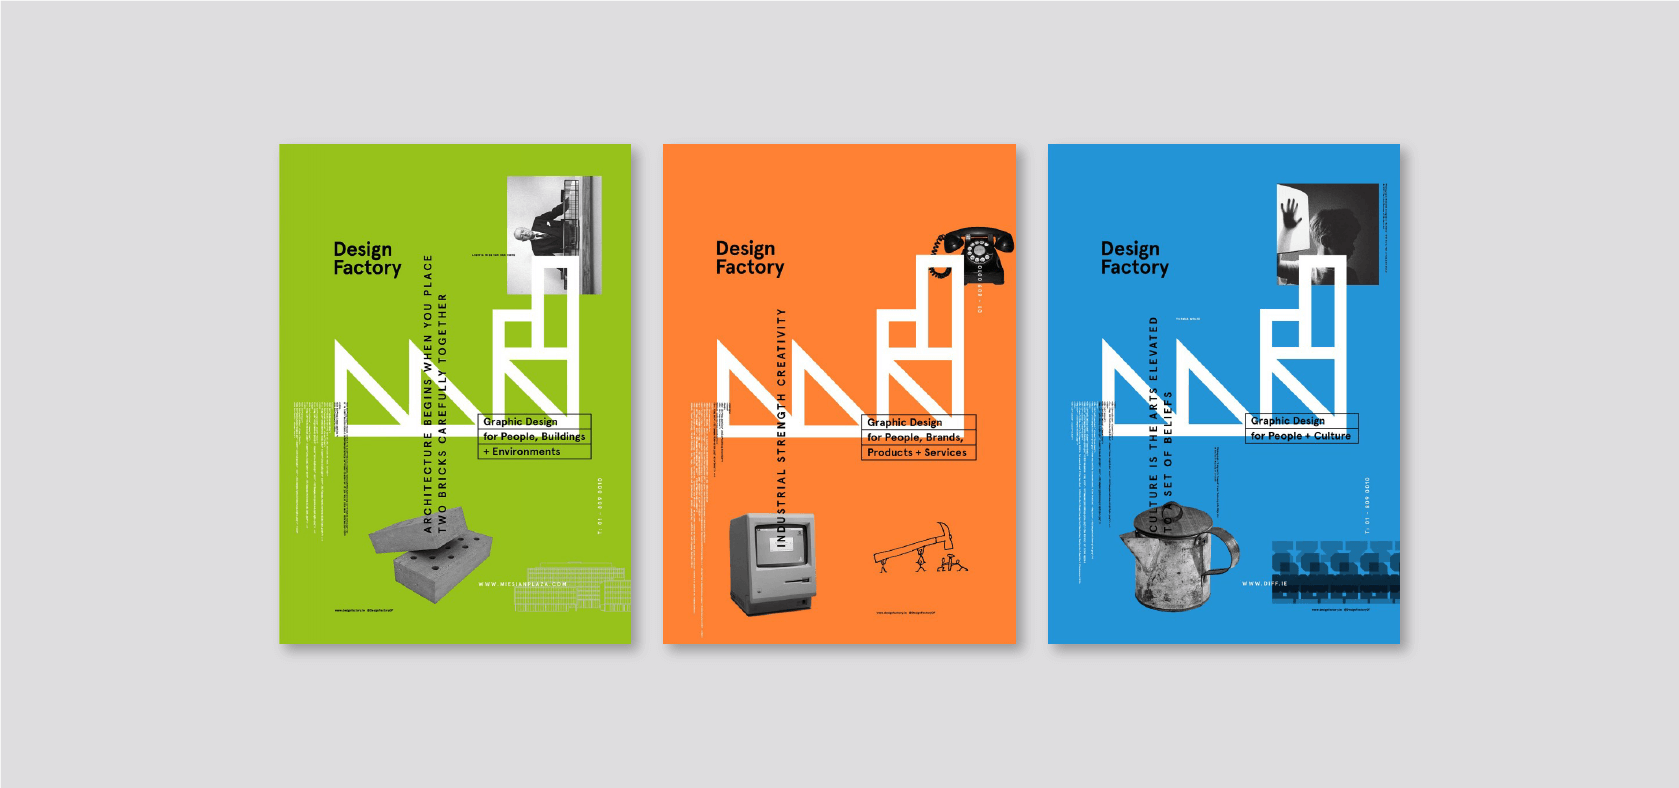 Poster design dublin - A Poster Series Designed To Highlight The Design Factory Branding